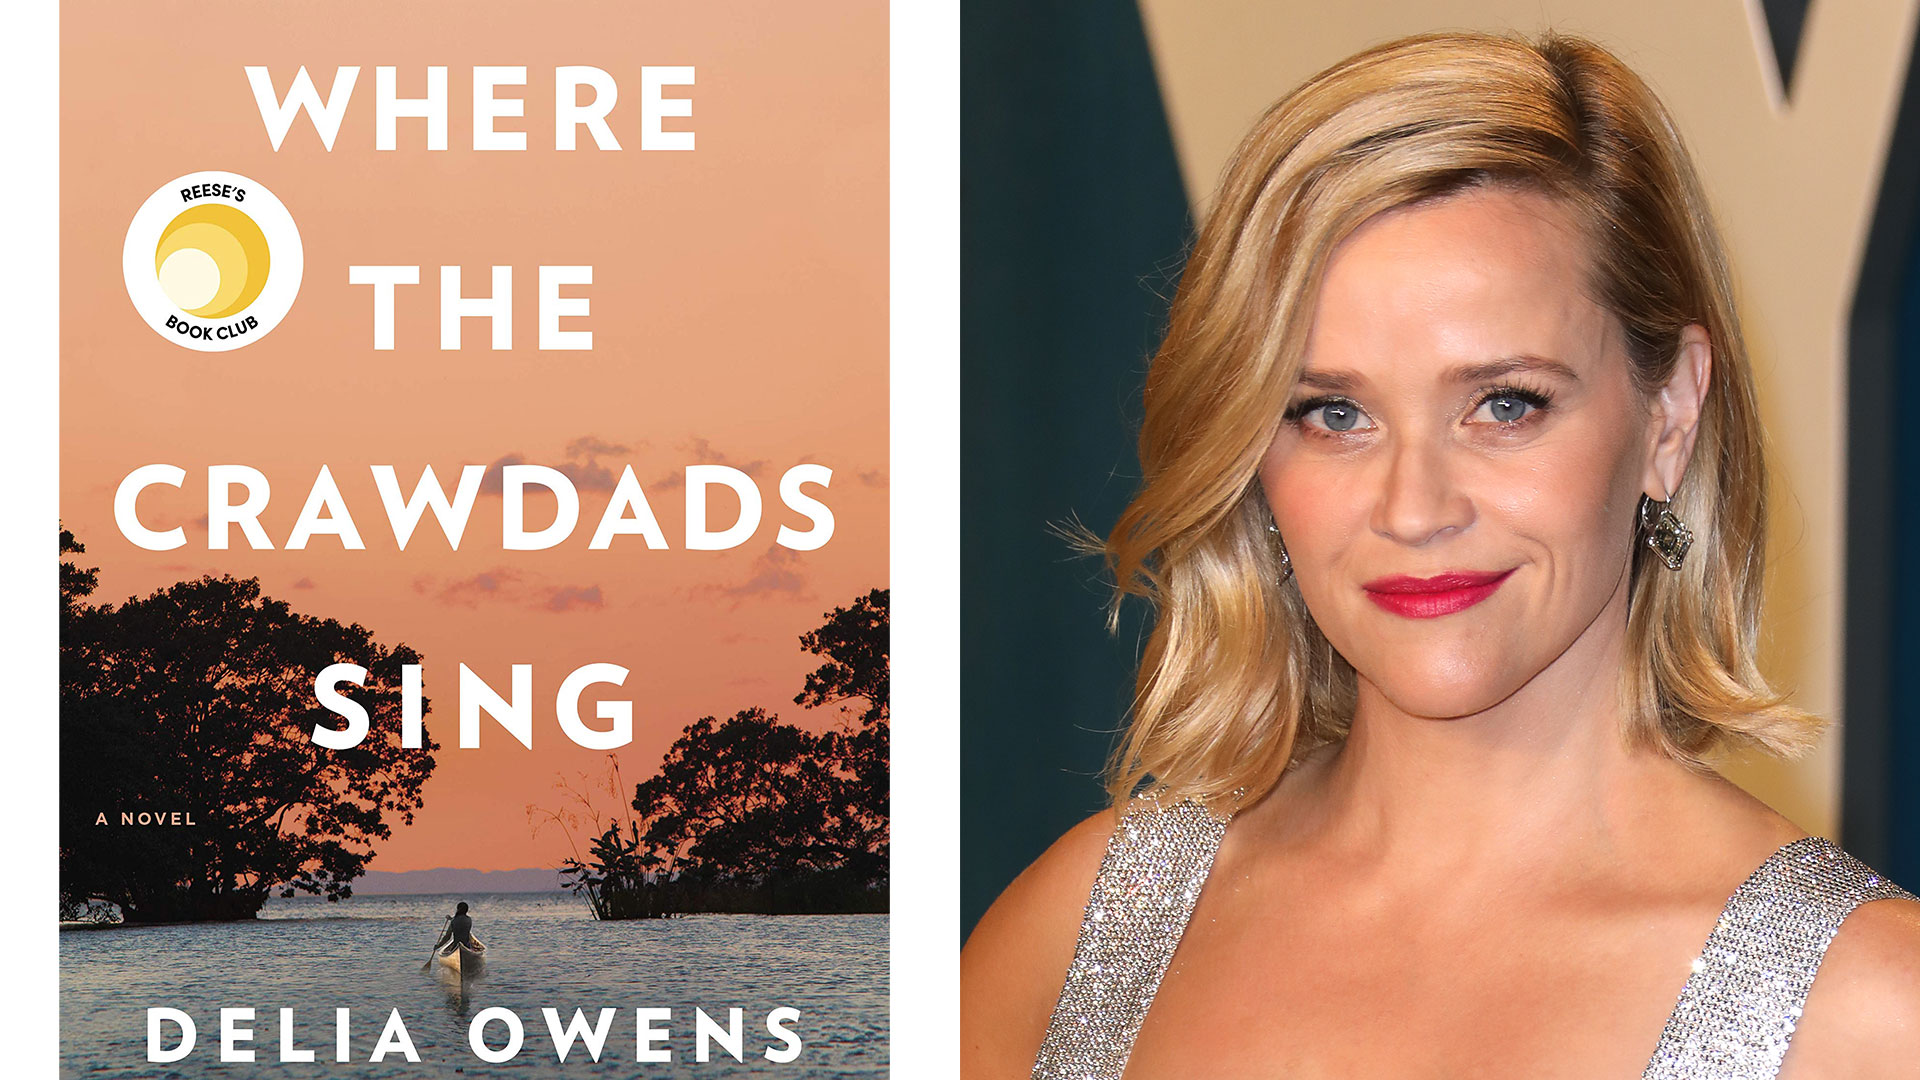 Where the Crawdads Sing Movie Casting